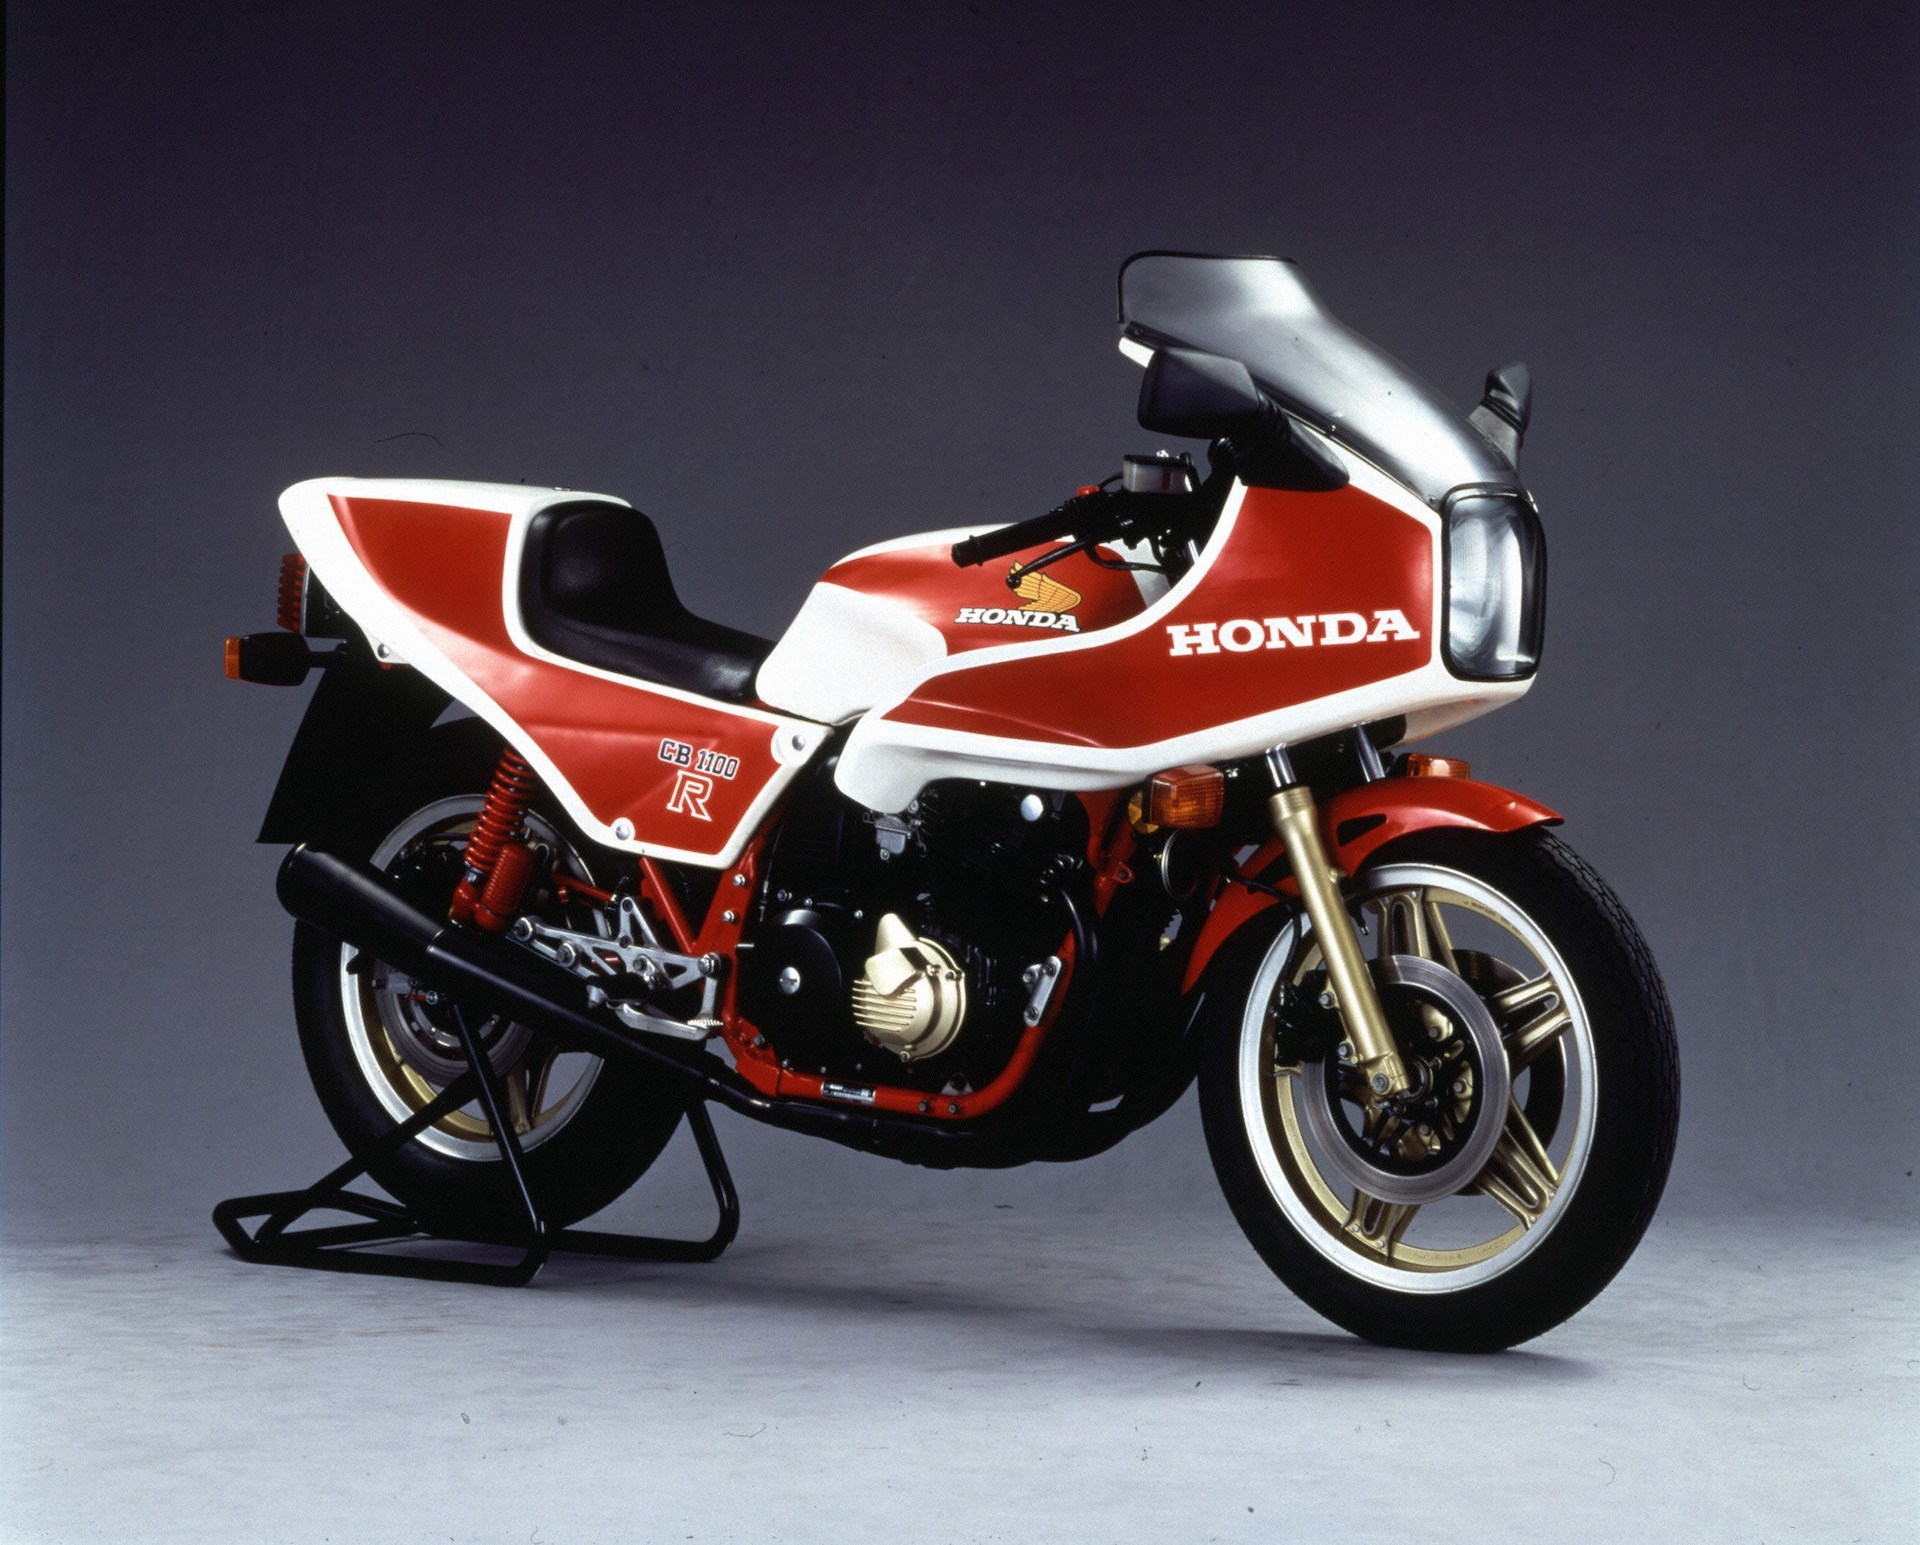 In 1981, Honda unleashed the furiously fast CB1100R and Ron Haslam and Wayne Gardner used it to great effect.